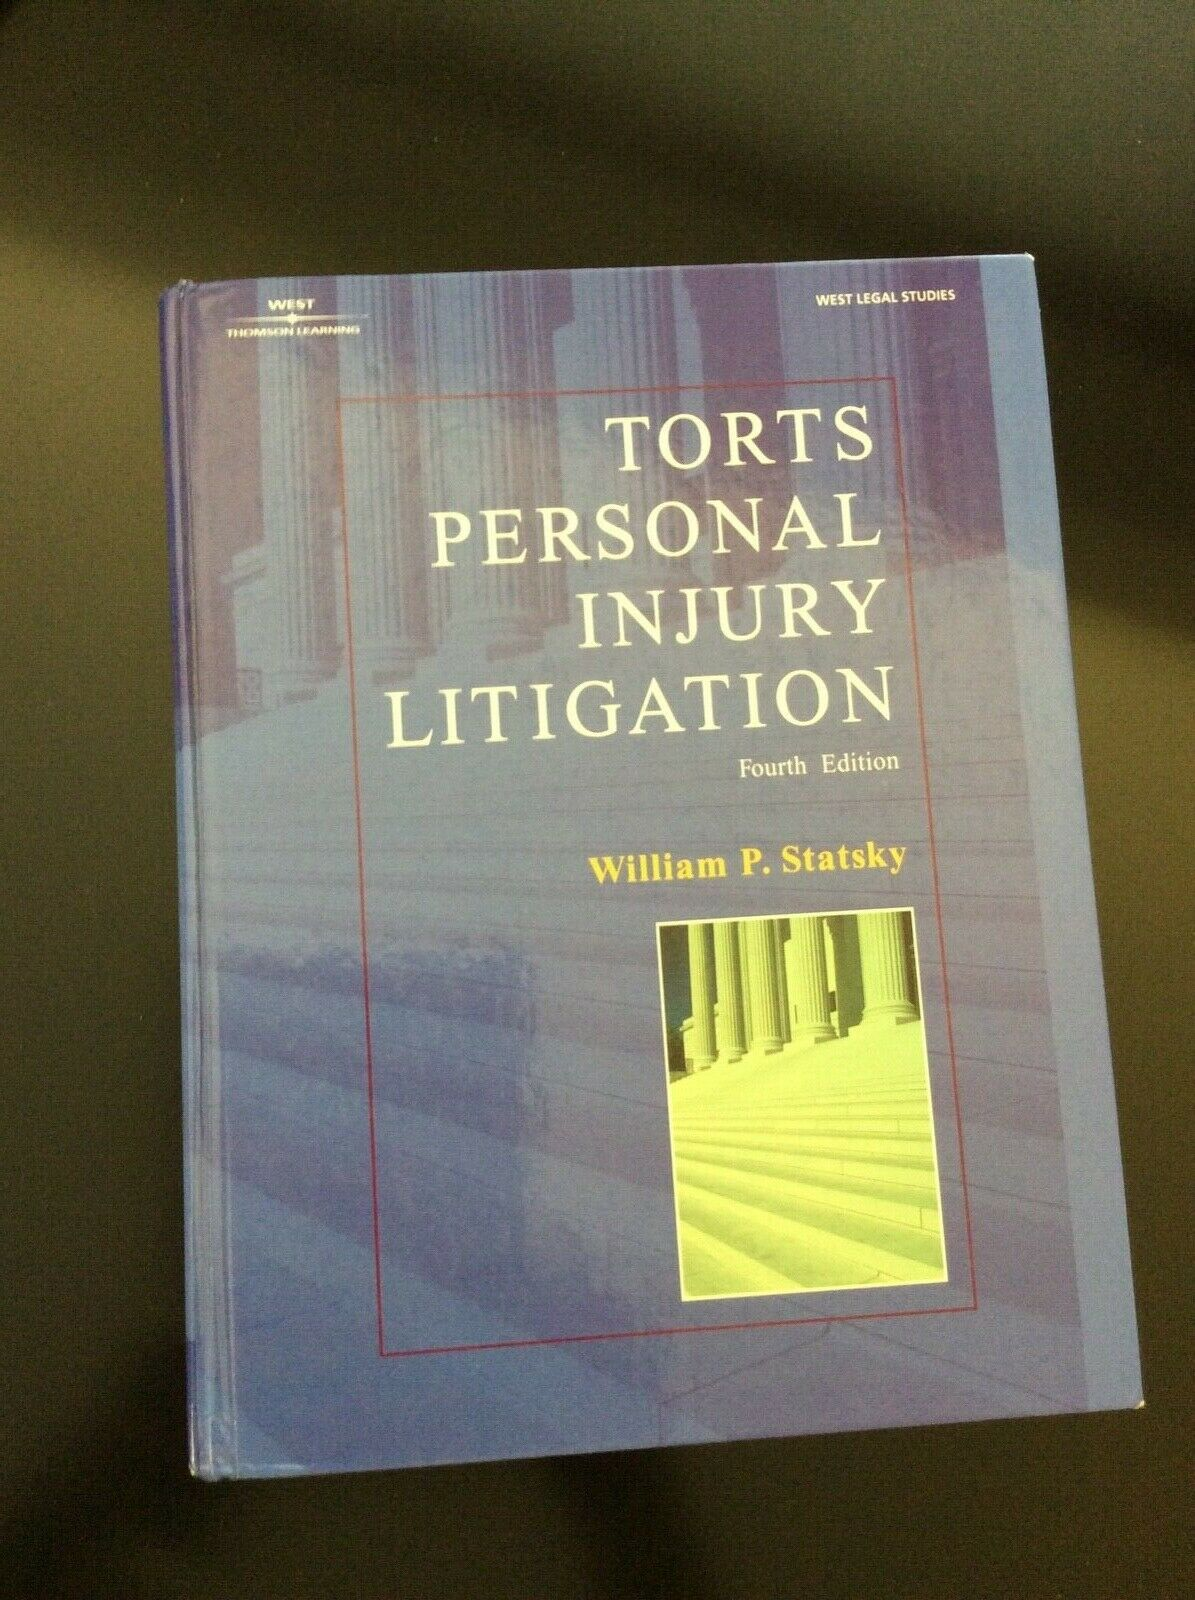 Torts Personal Injury Litigation by William P. Statsky (2001) 1